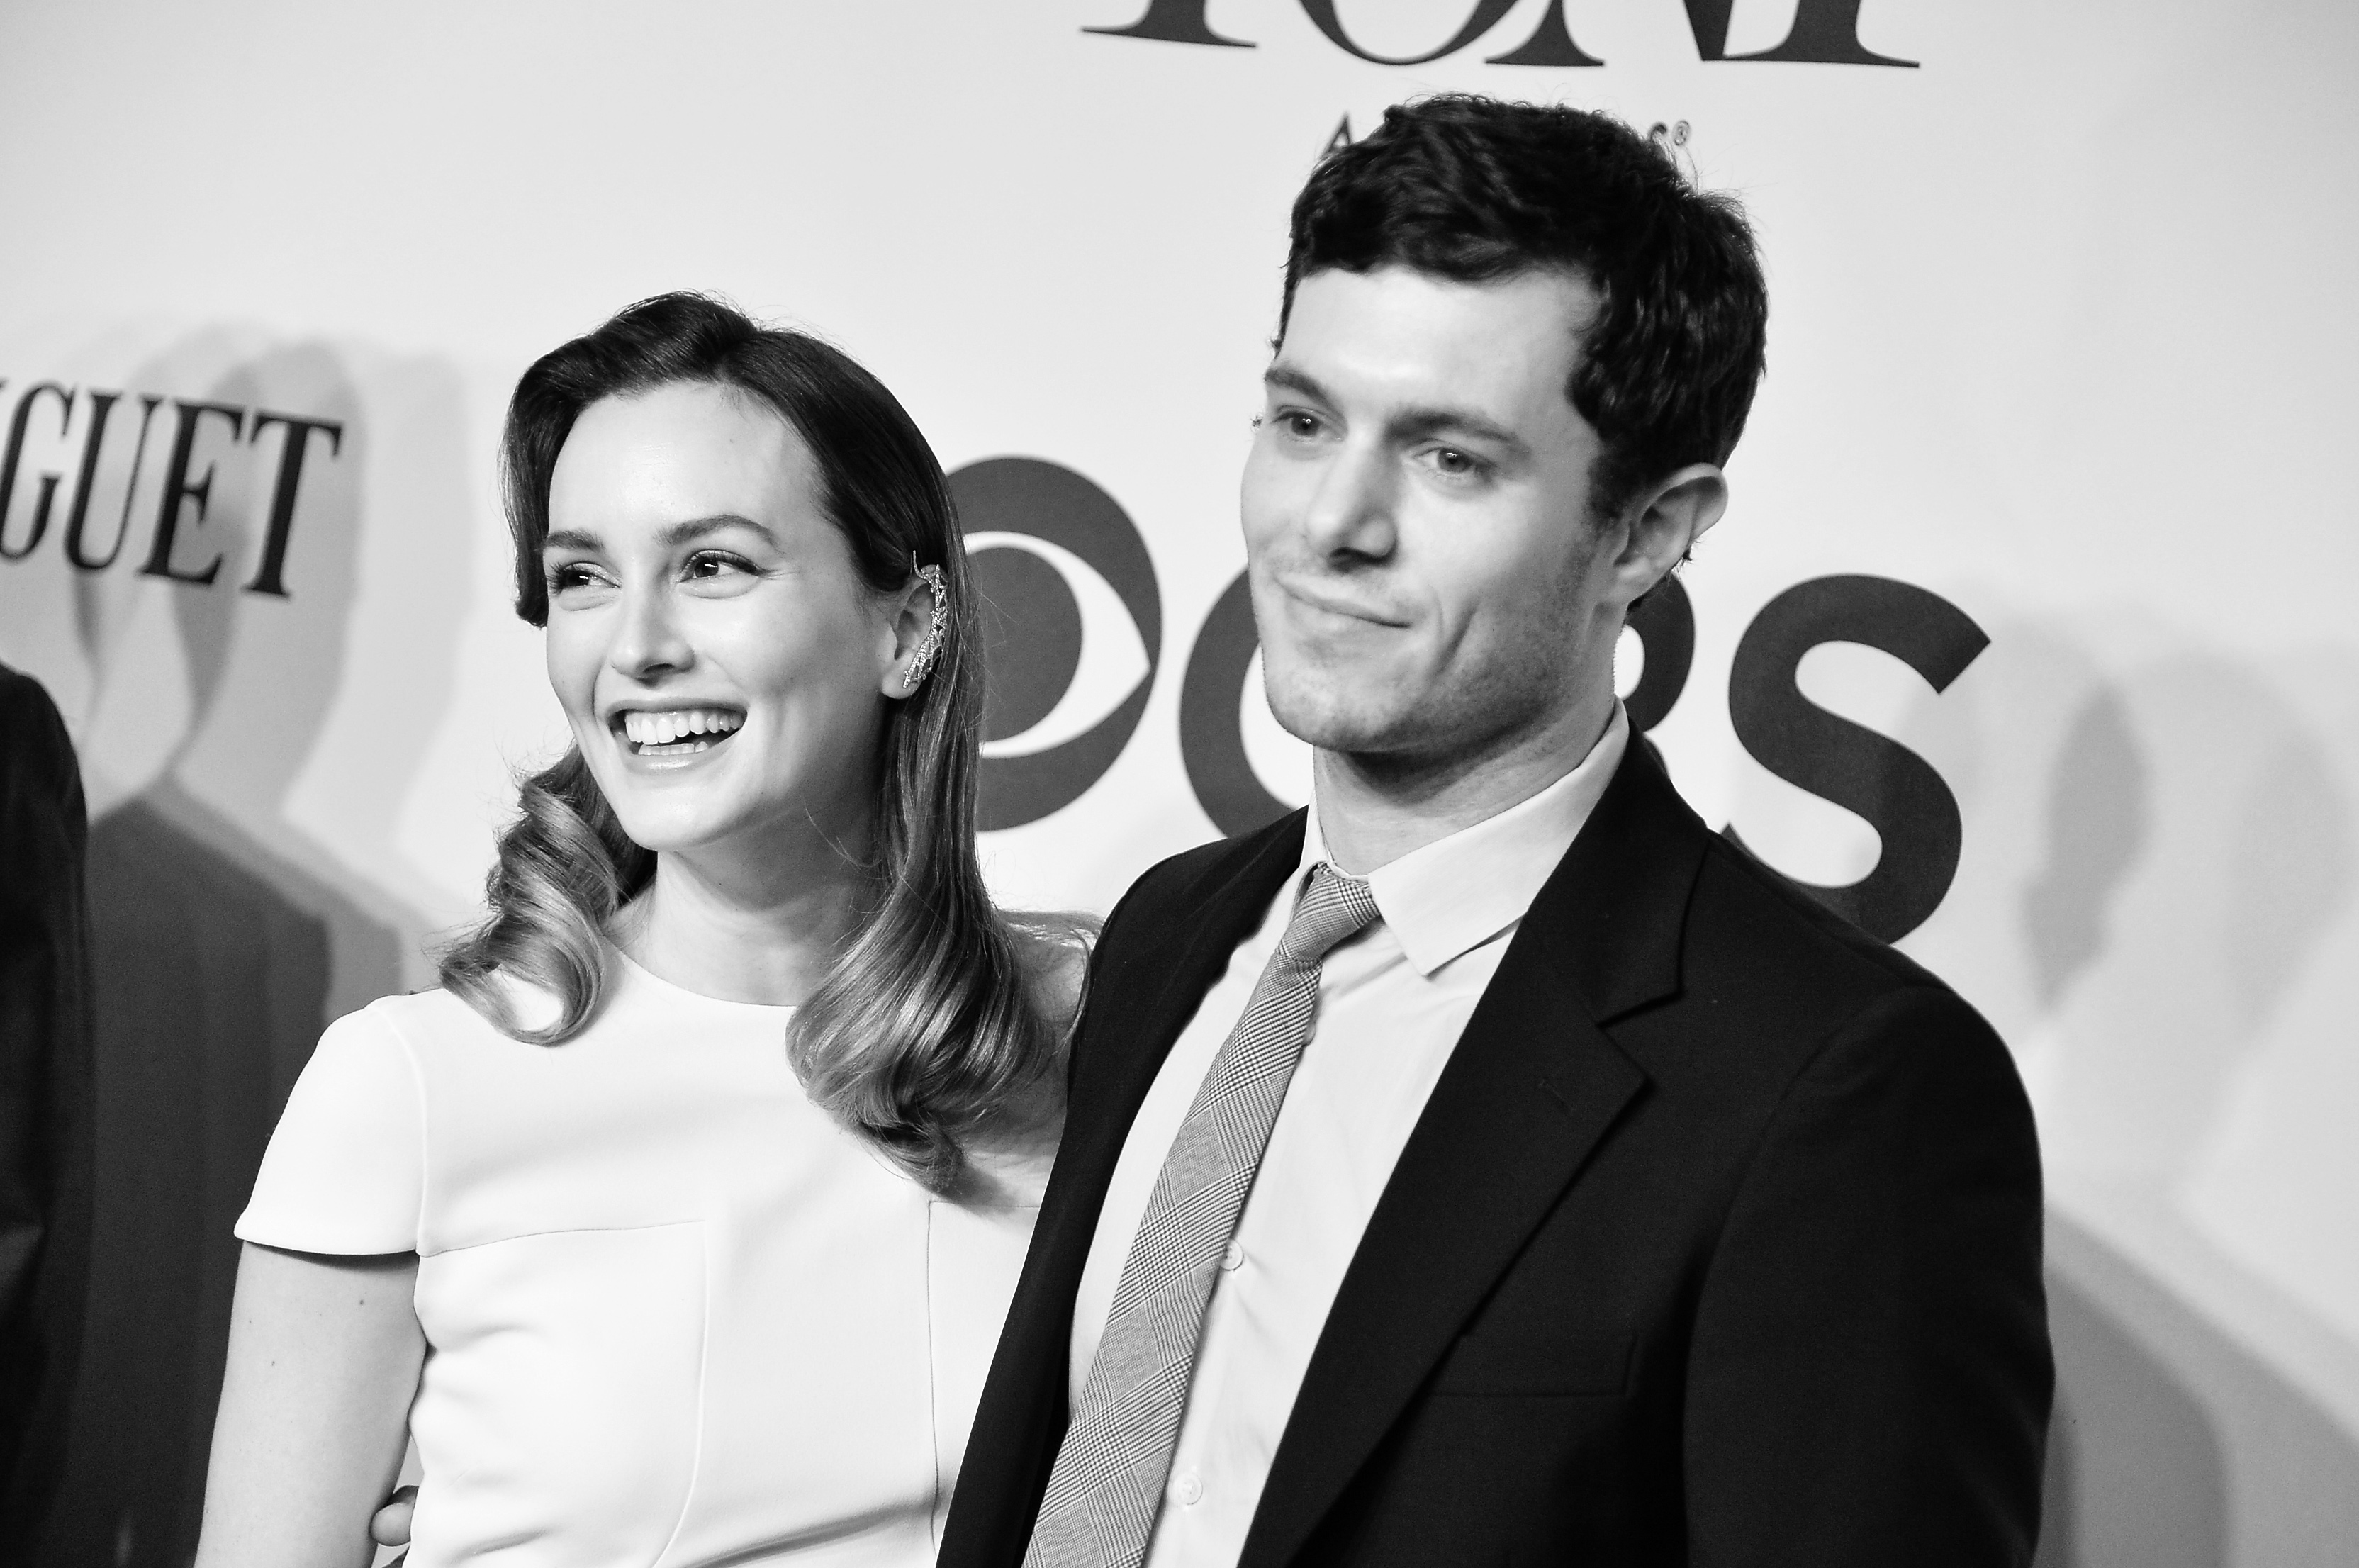 Leighton Meester and Adam Brody in New York City on June 8, 2014.